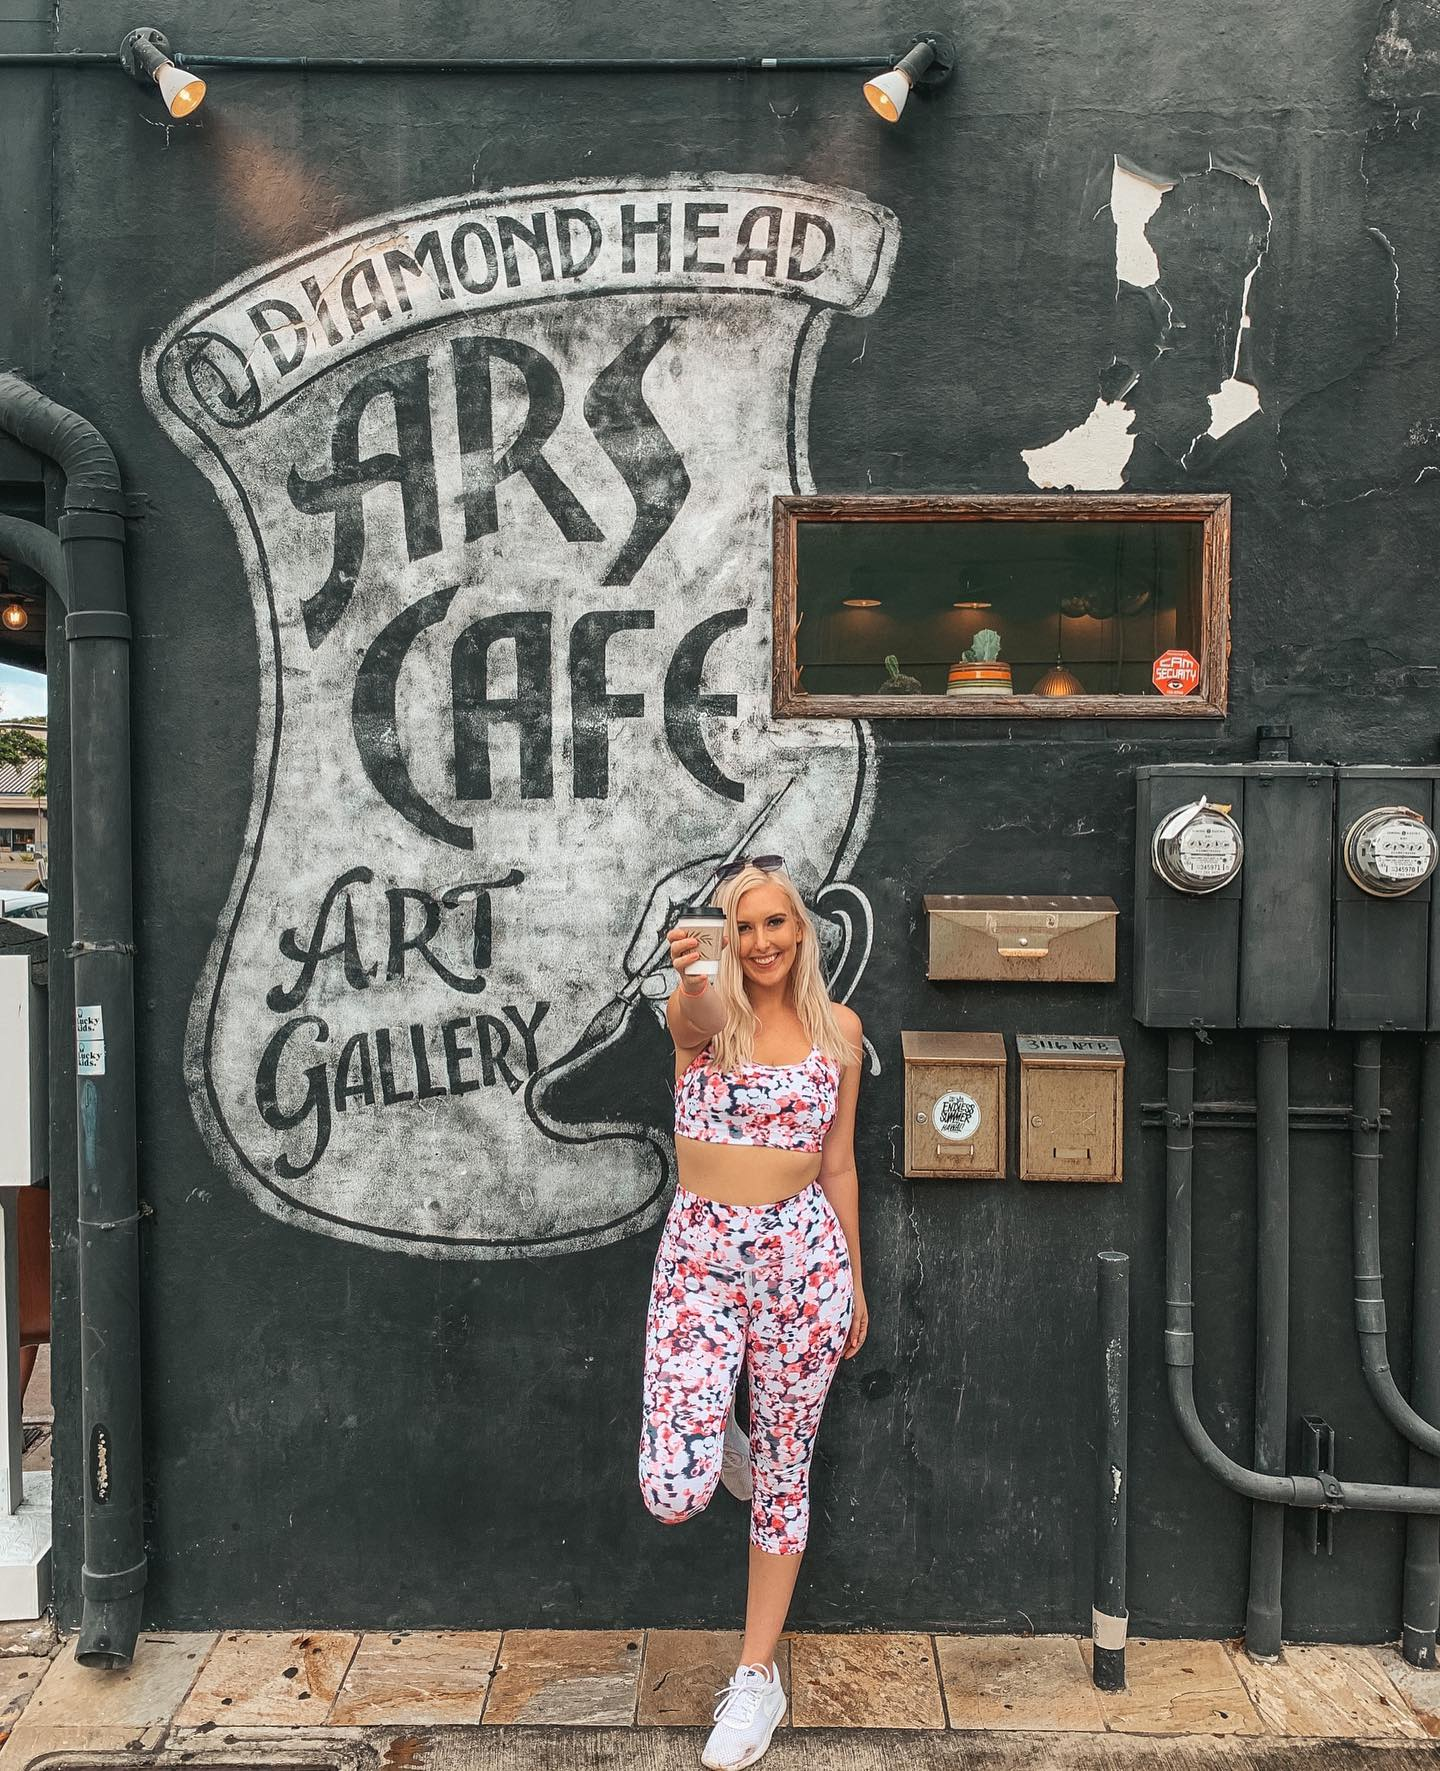 "Destiny wearing a pink speckled workout outfit and holding up coffee outside of Ars Cafe in front of their mural that reads ""Diamond Head Ars Cafe Art Gallery"""